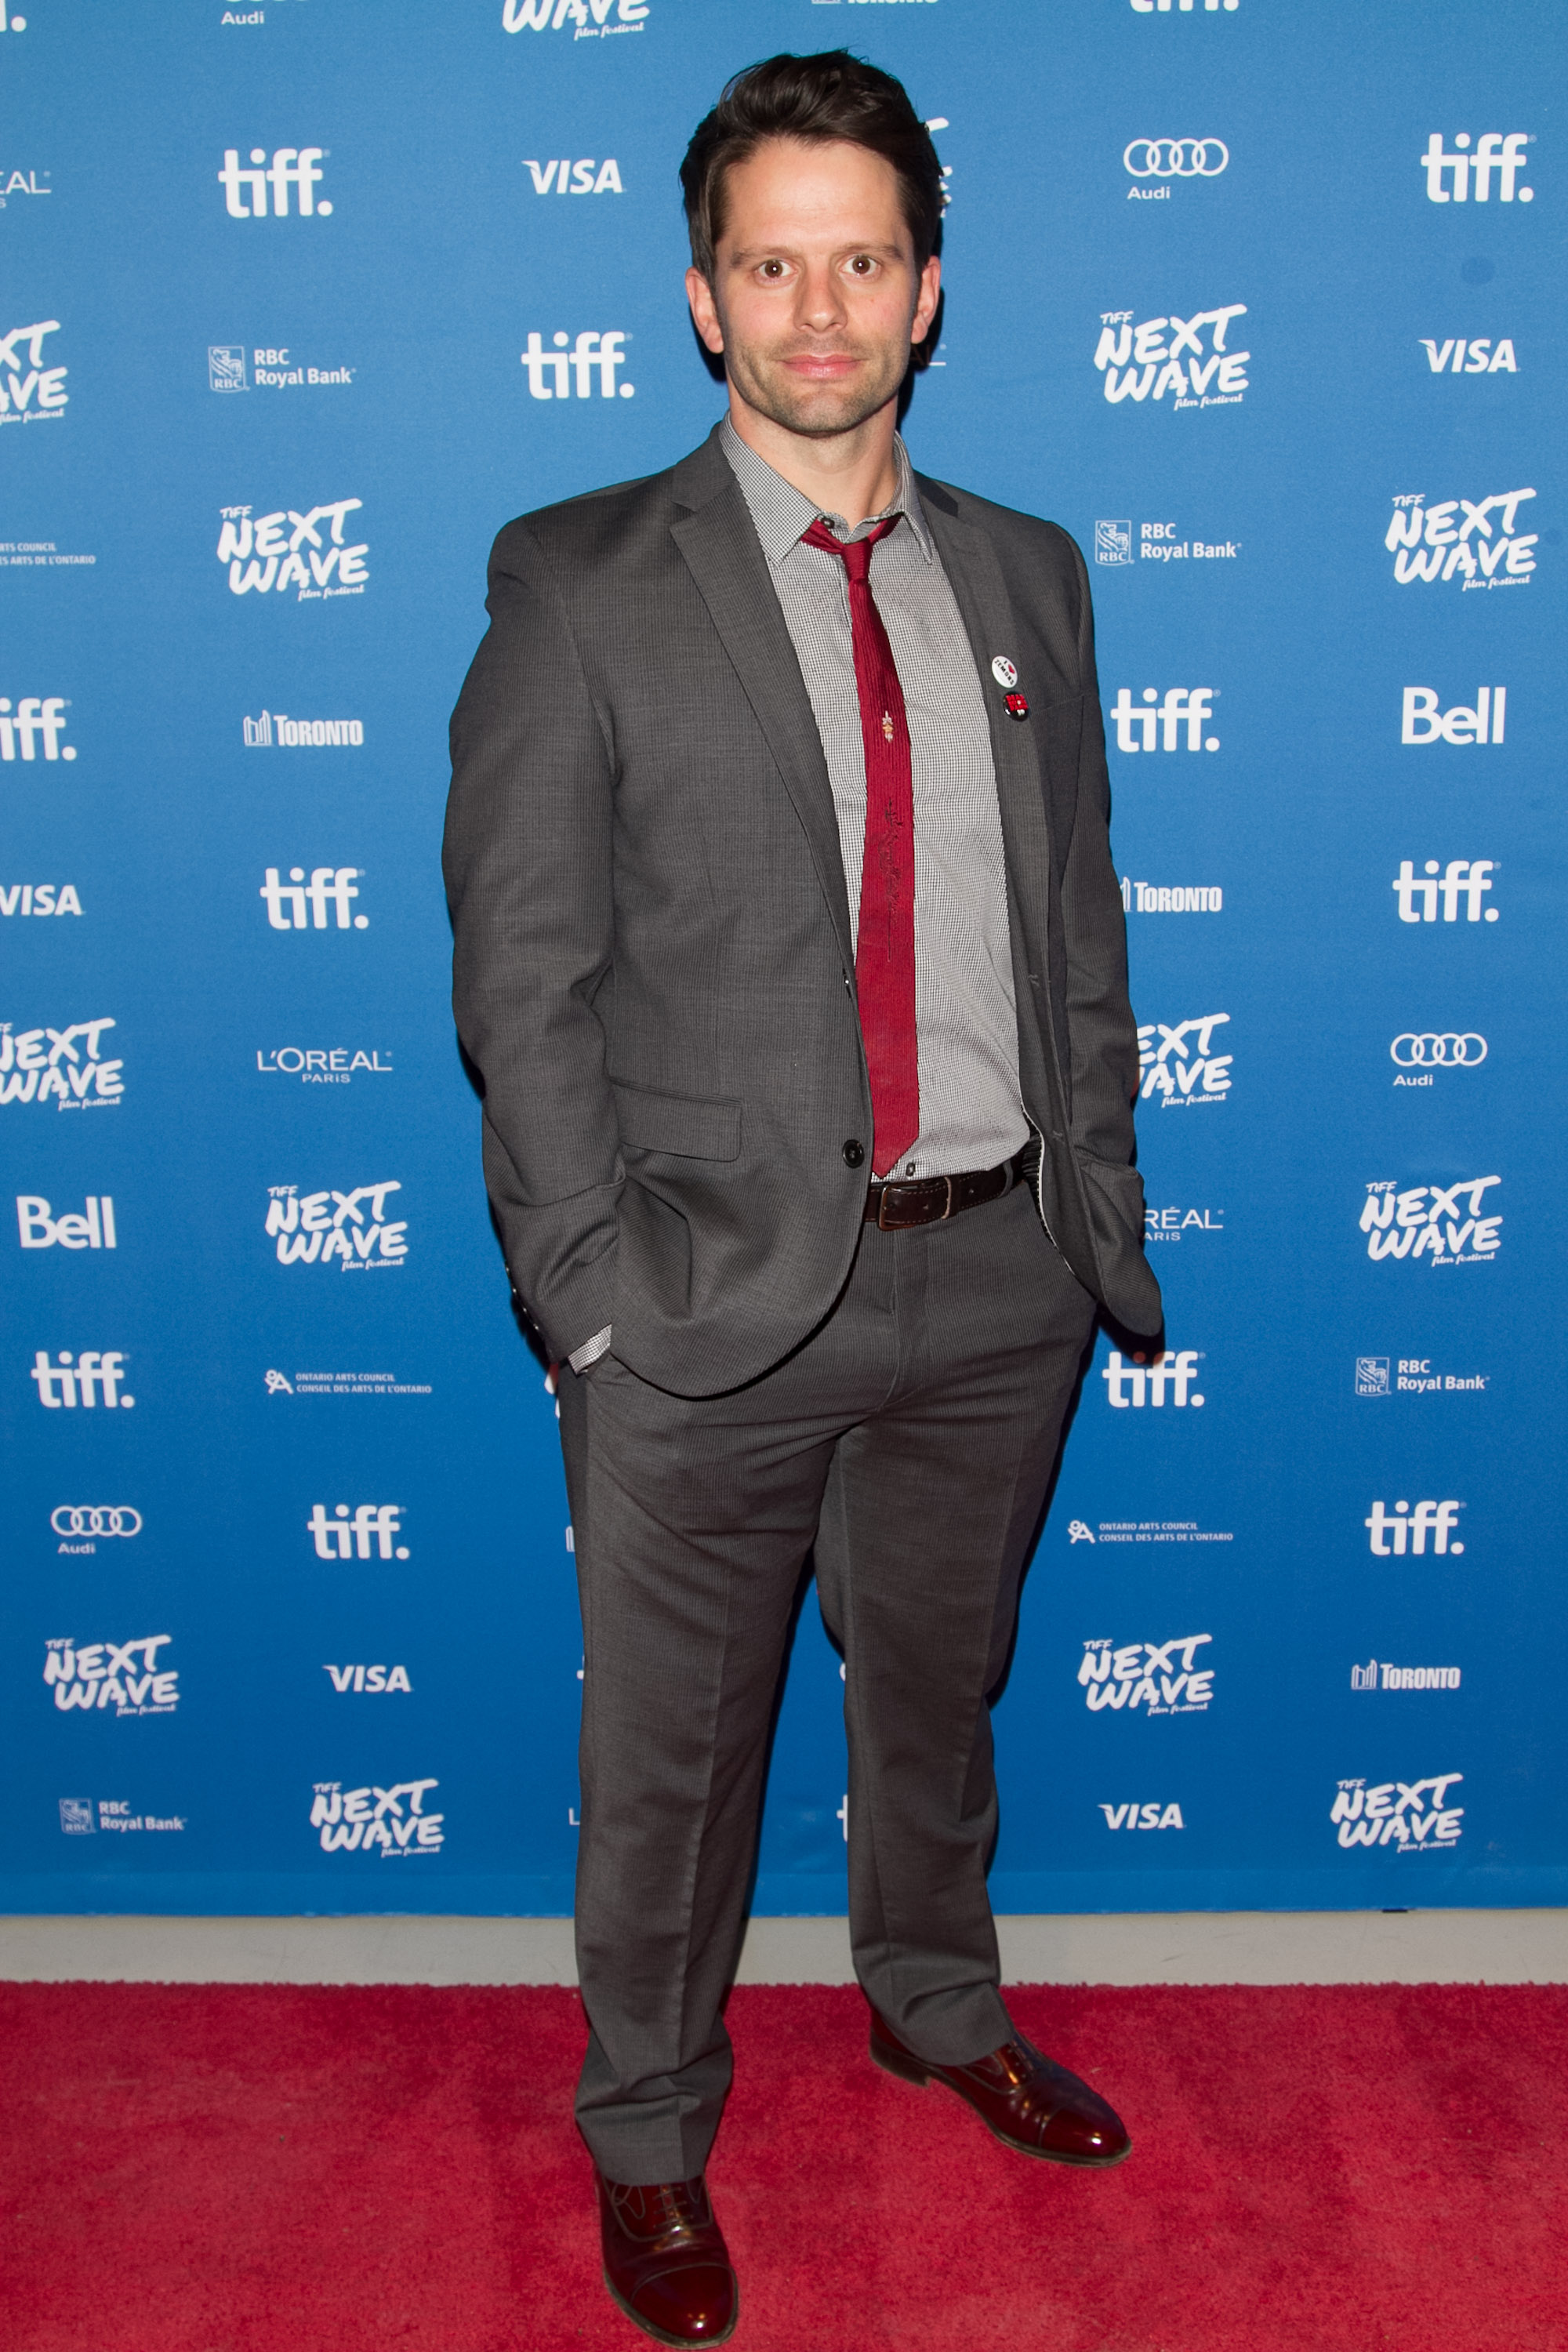 Tim Doiron (Actor/Writer) at the North American Premiere of Dead Before Dawn 3D.  TIFF Next Wave Film Festival.  Photo by: Sarjoun Faour, WireImage/Getty for TIFF